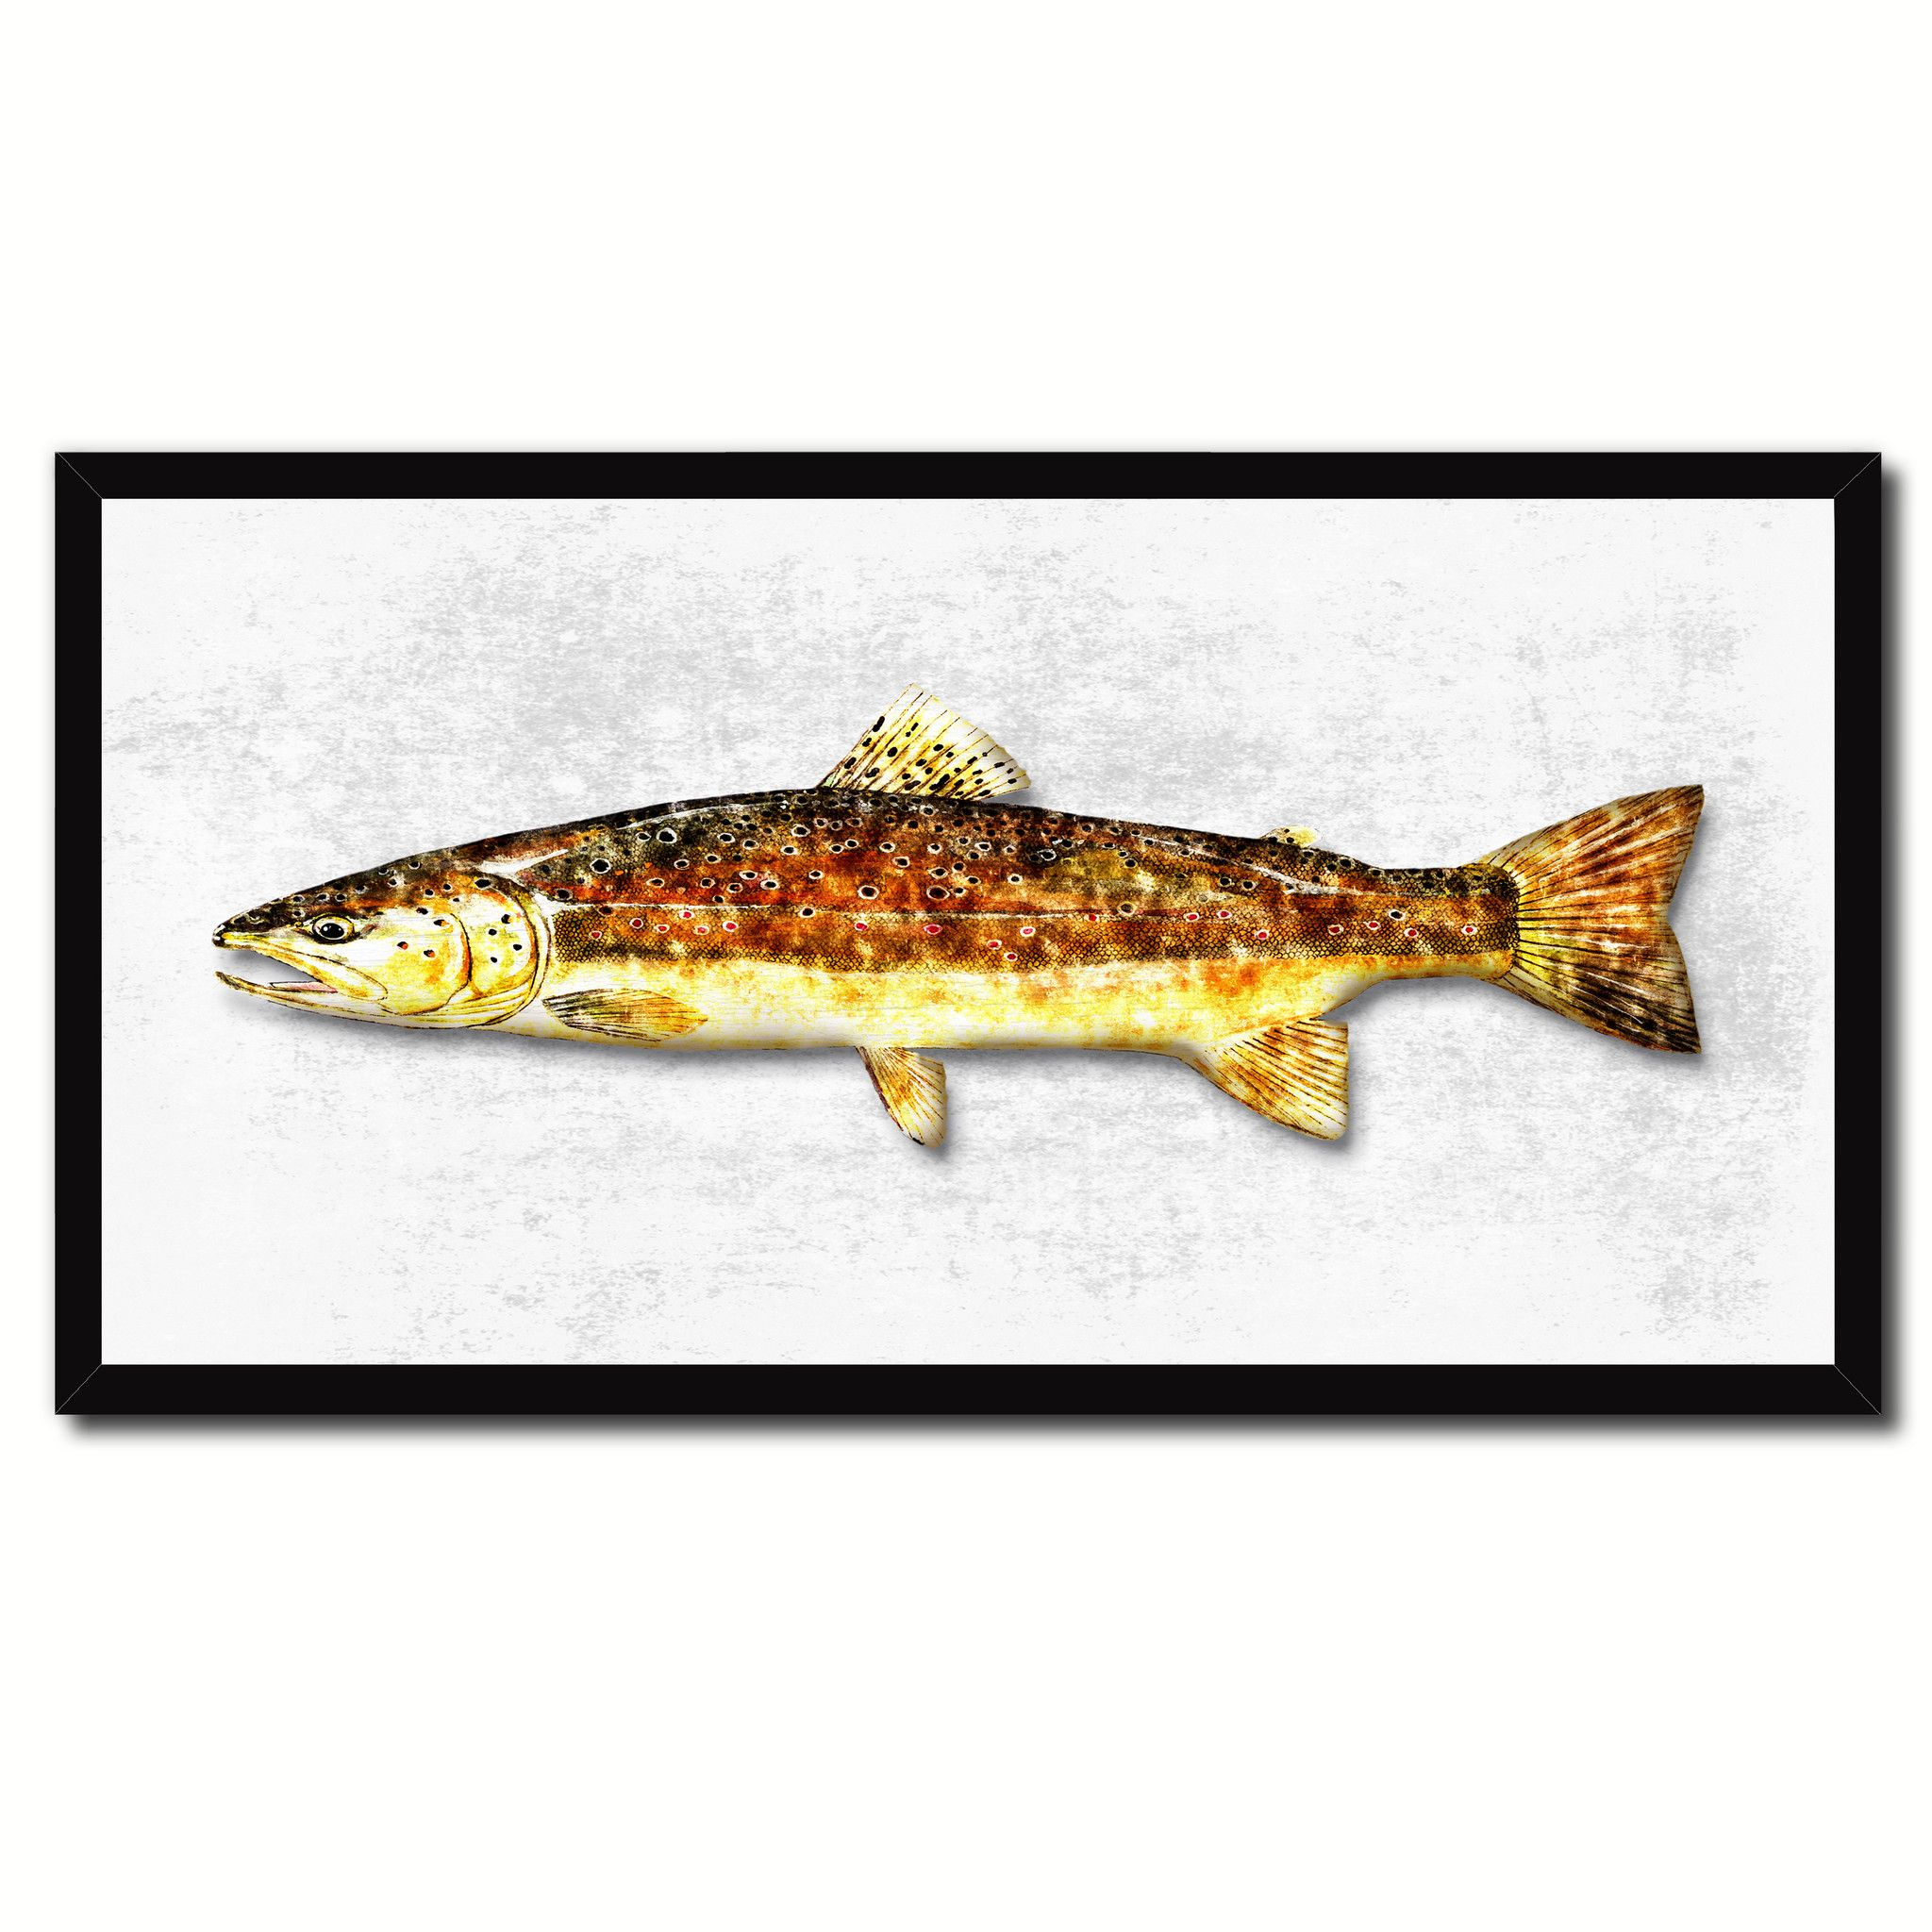 Nautical gifts for the home - Brown Trout Fish Art White Canvas Print Picture Frames Home Decor Nautical Fisherman Gifts